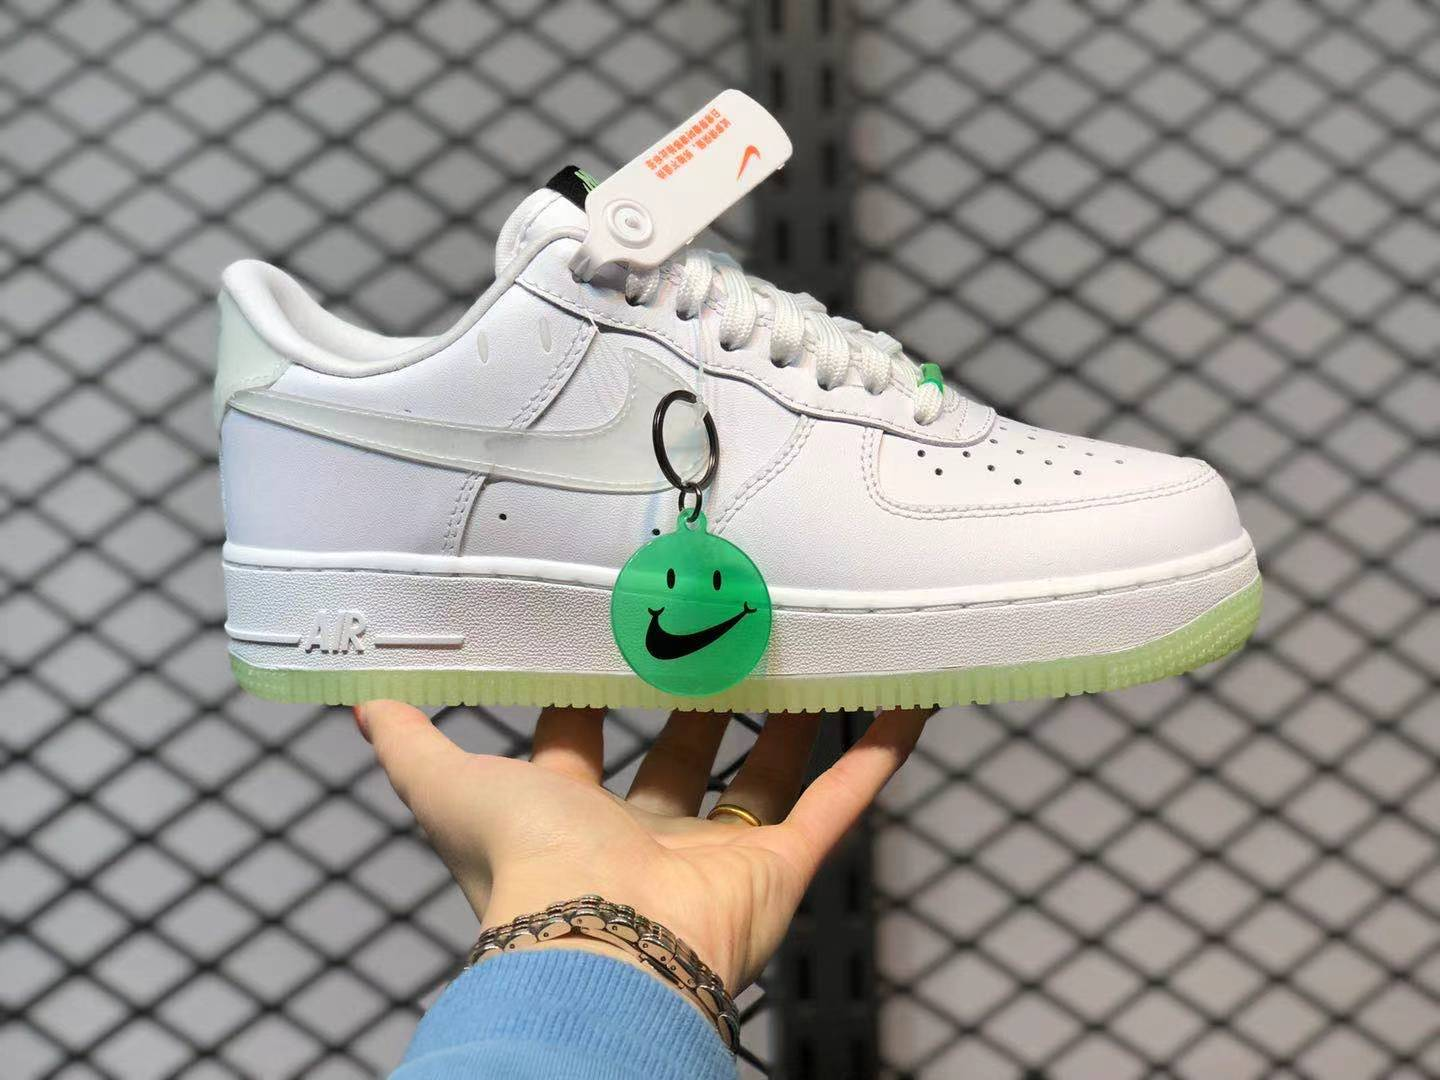 Glow-in-the-Dark Nike Air Force 1 Low Have A Nike Day White Neon Green